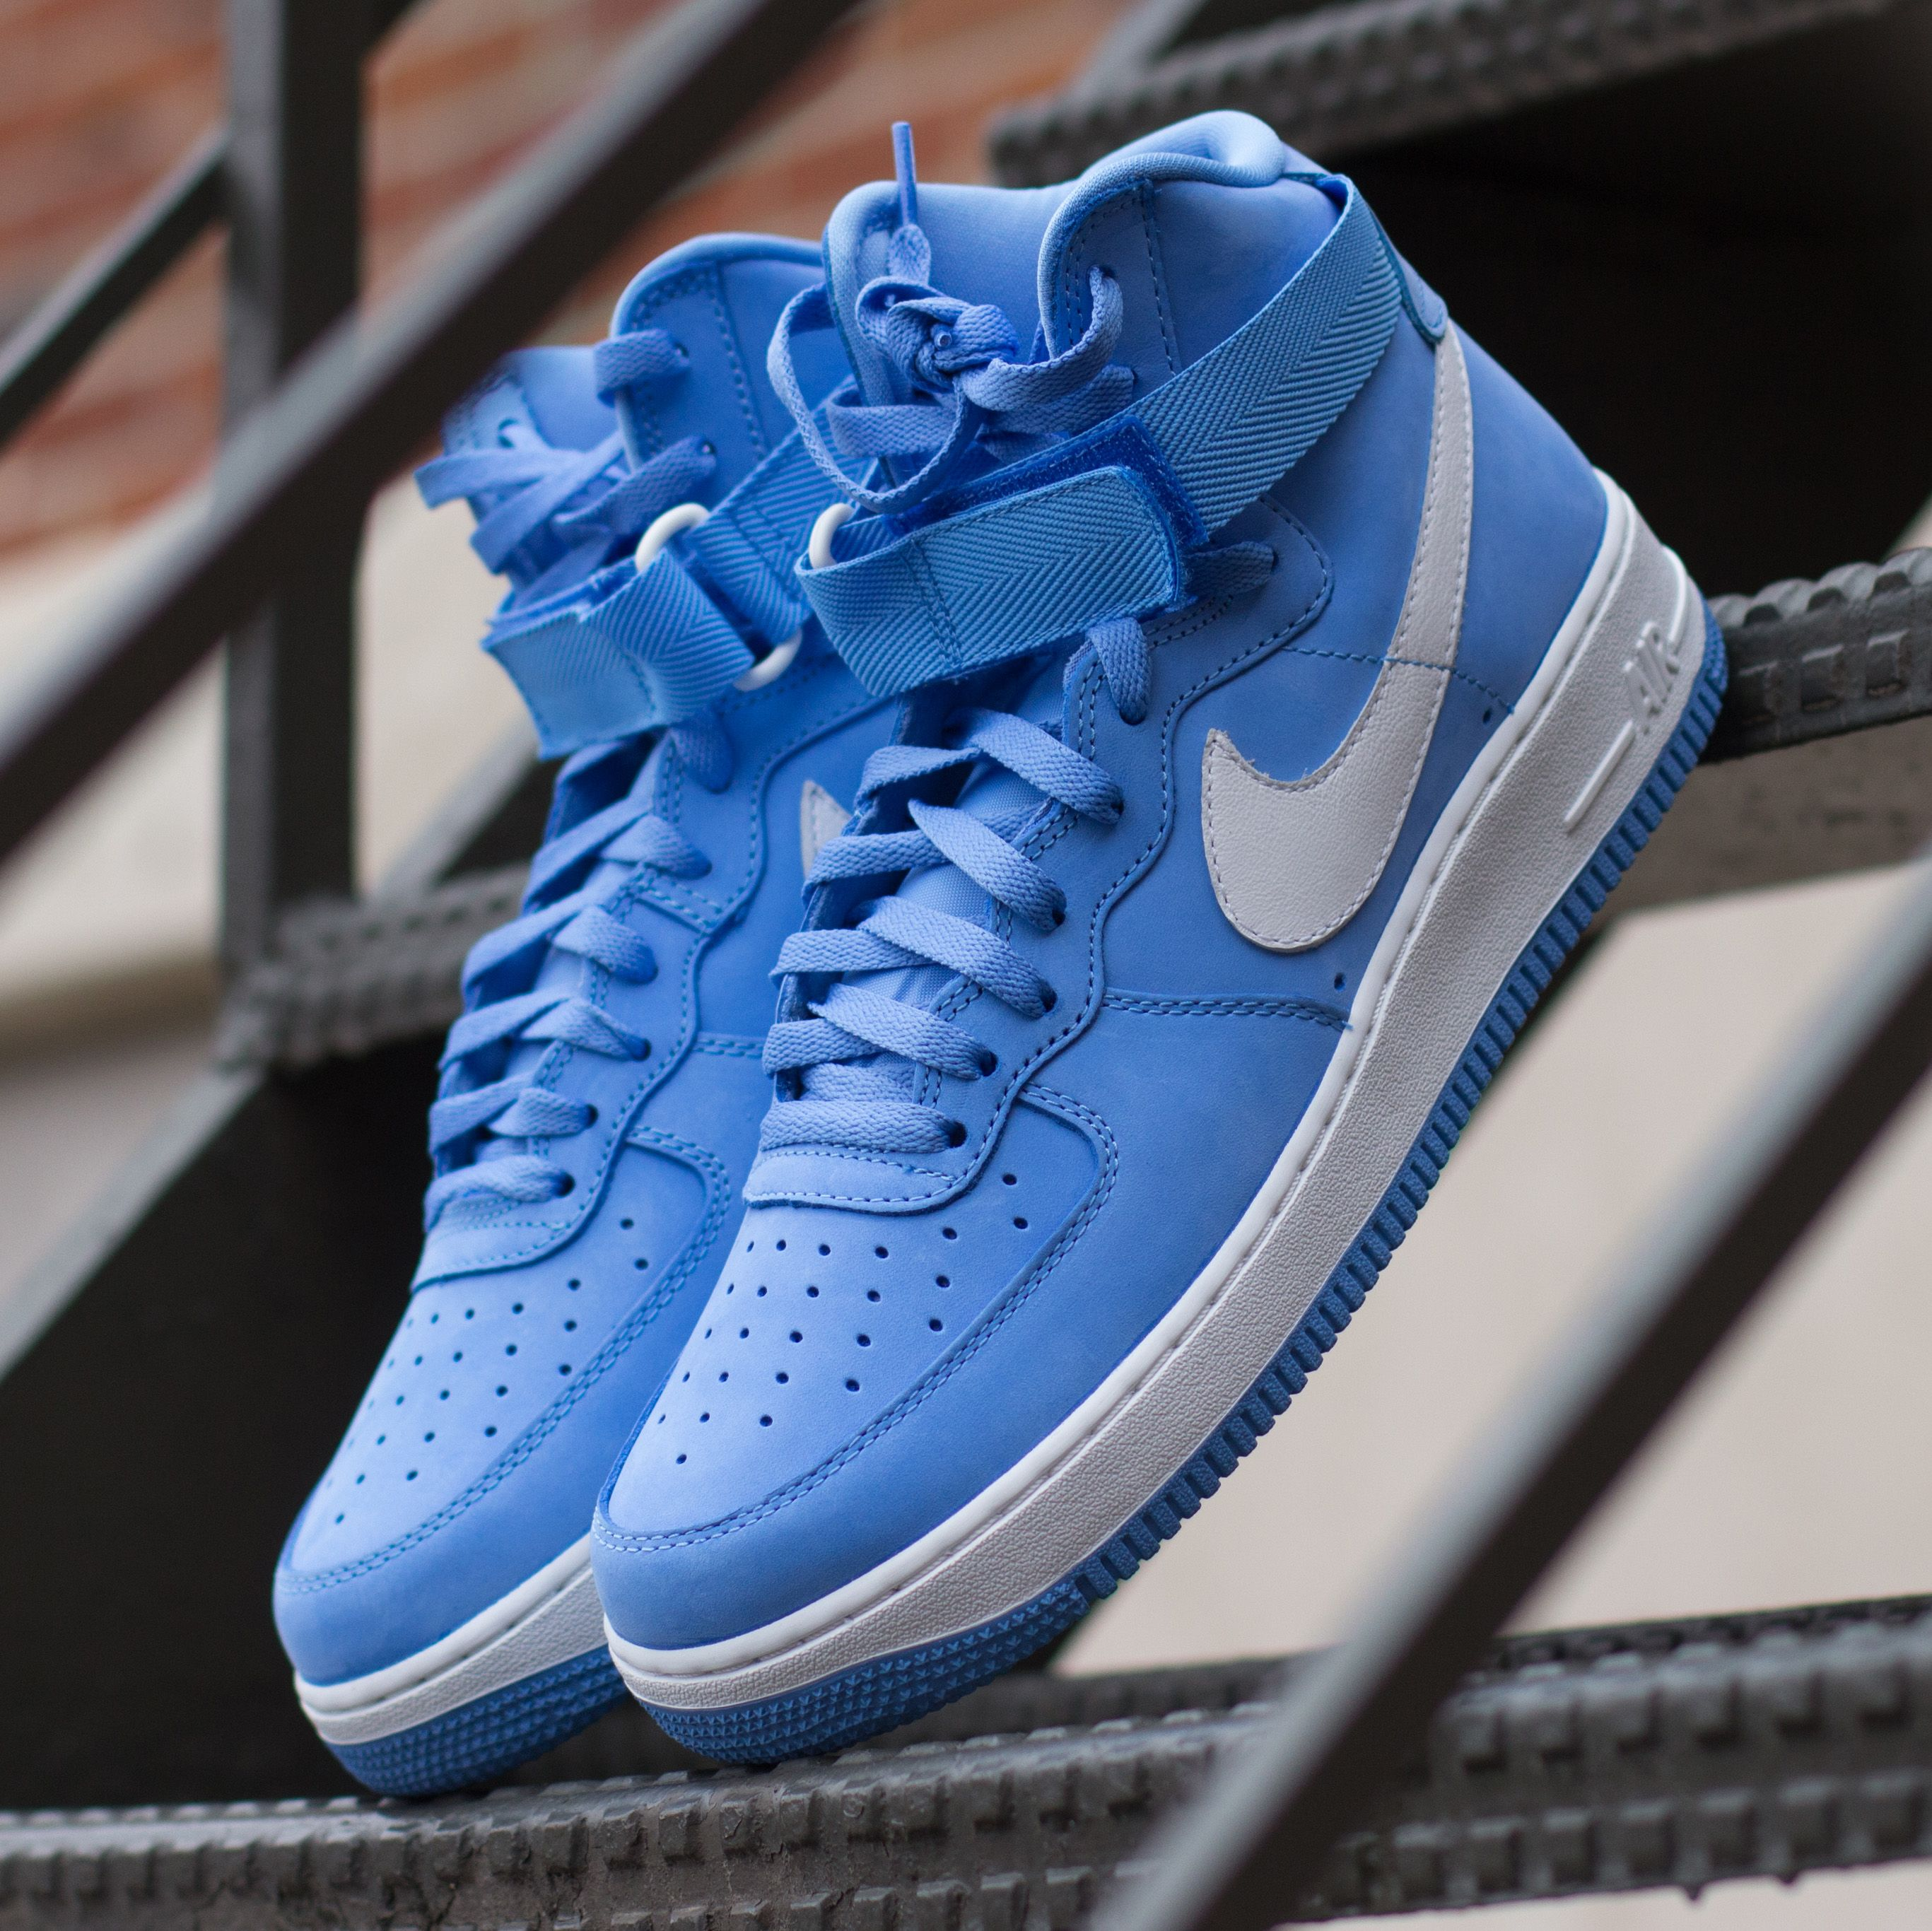 The Nike Air Force 1 High Retro Qs Is Out And Available For 120 On Citygear Com Nike Sneakers Nike Nike Air Force Sneaker